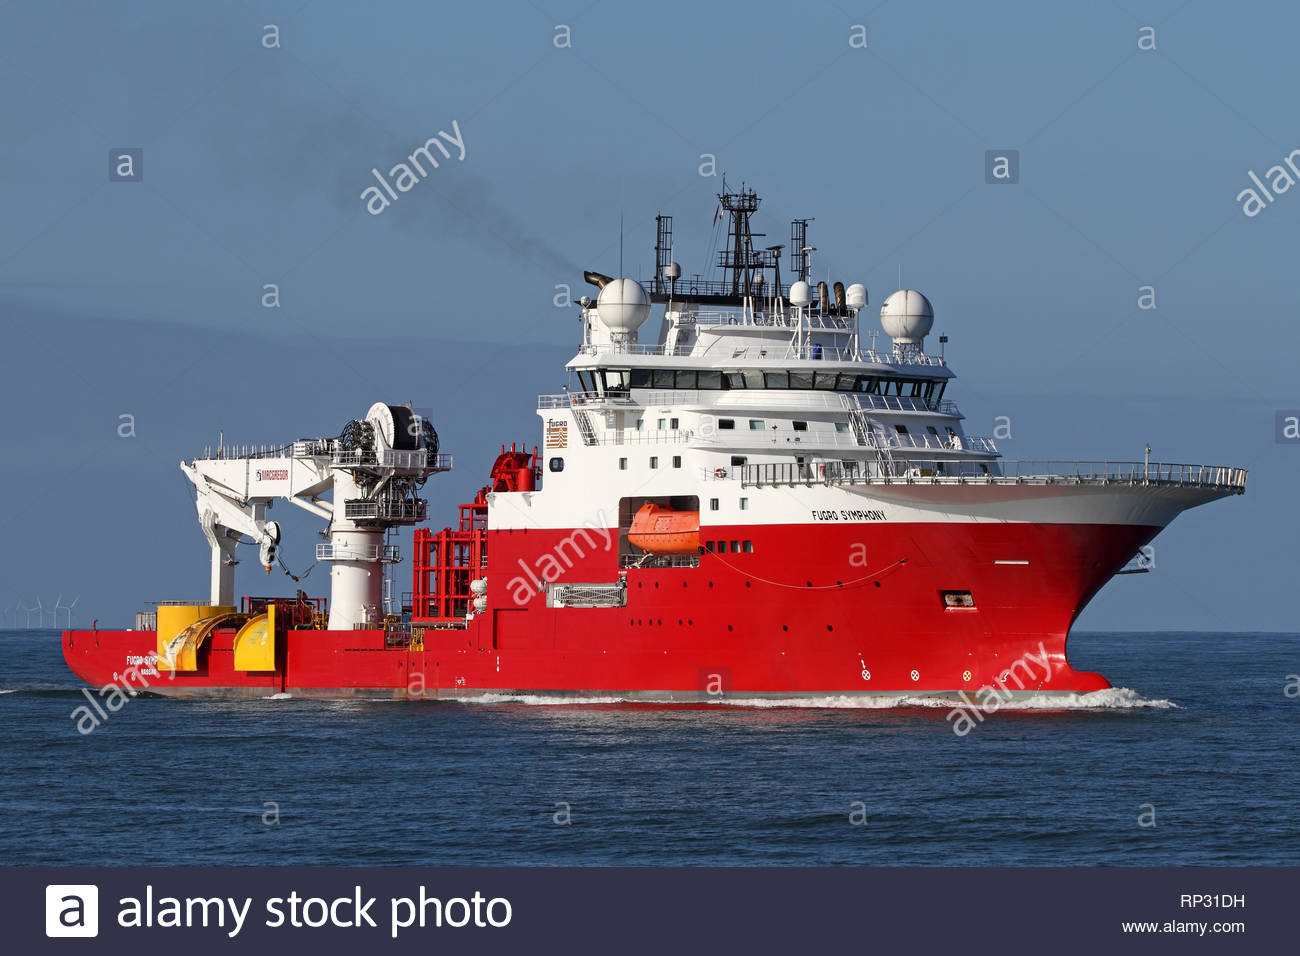 An offshore vessel - Stock Image